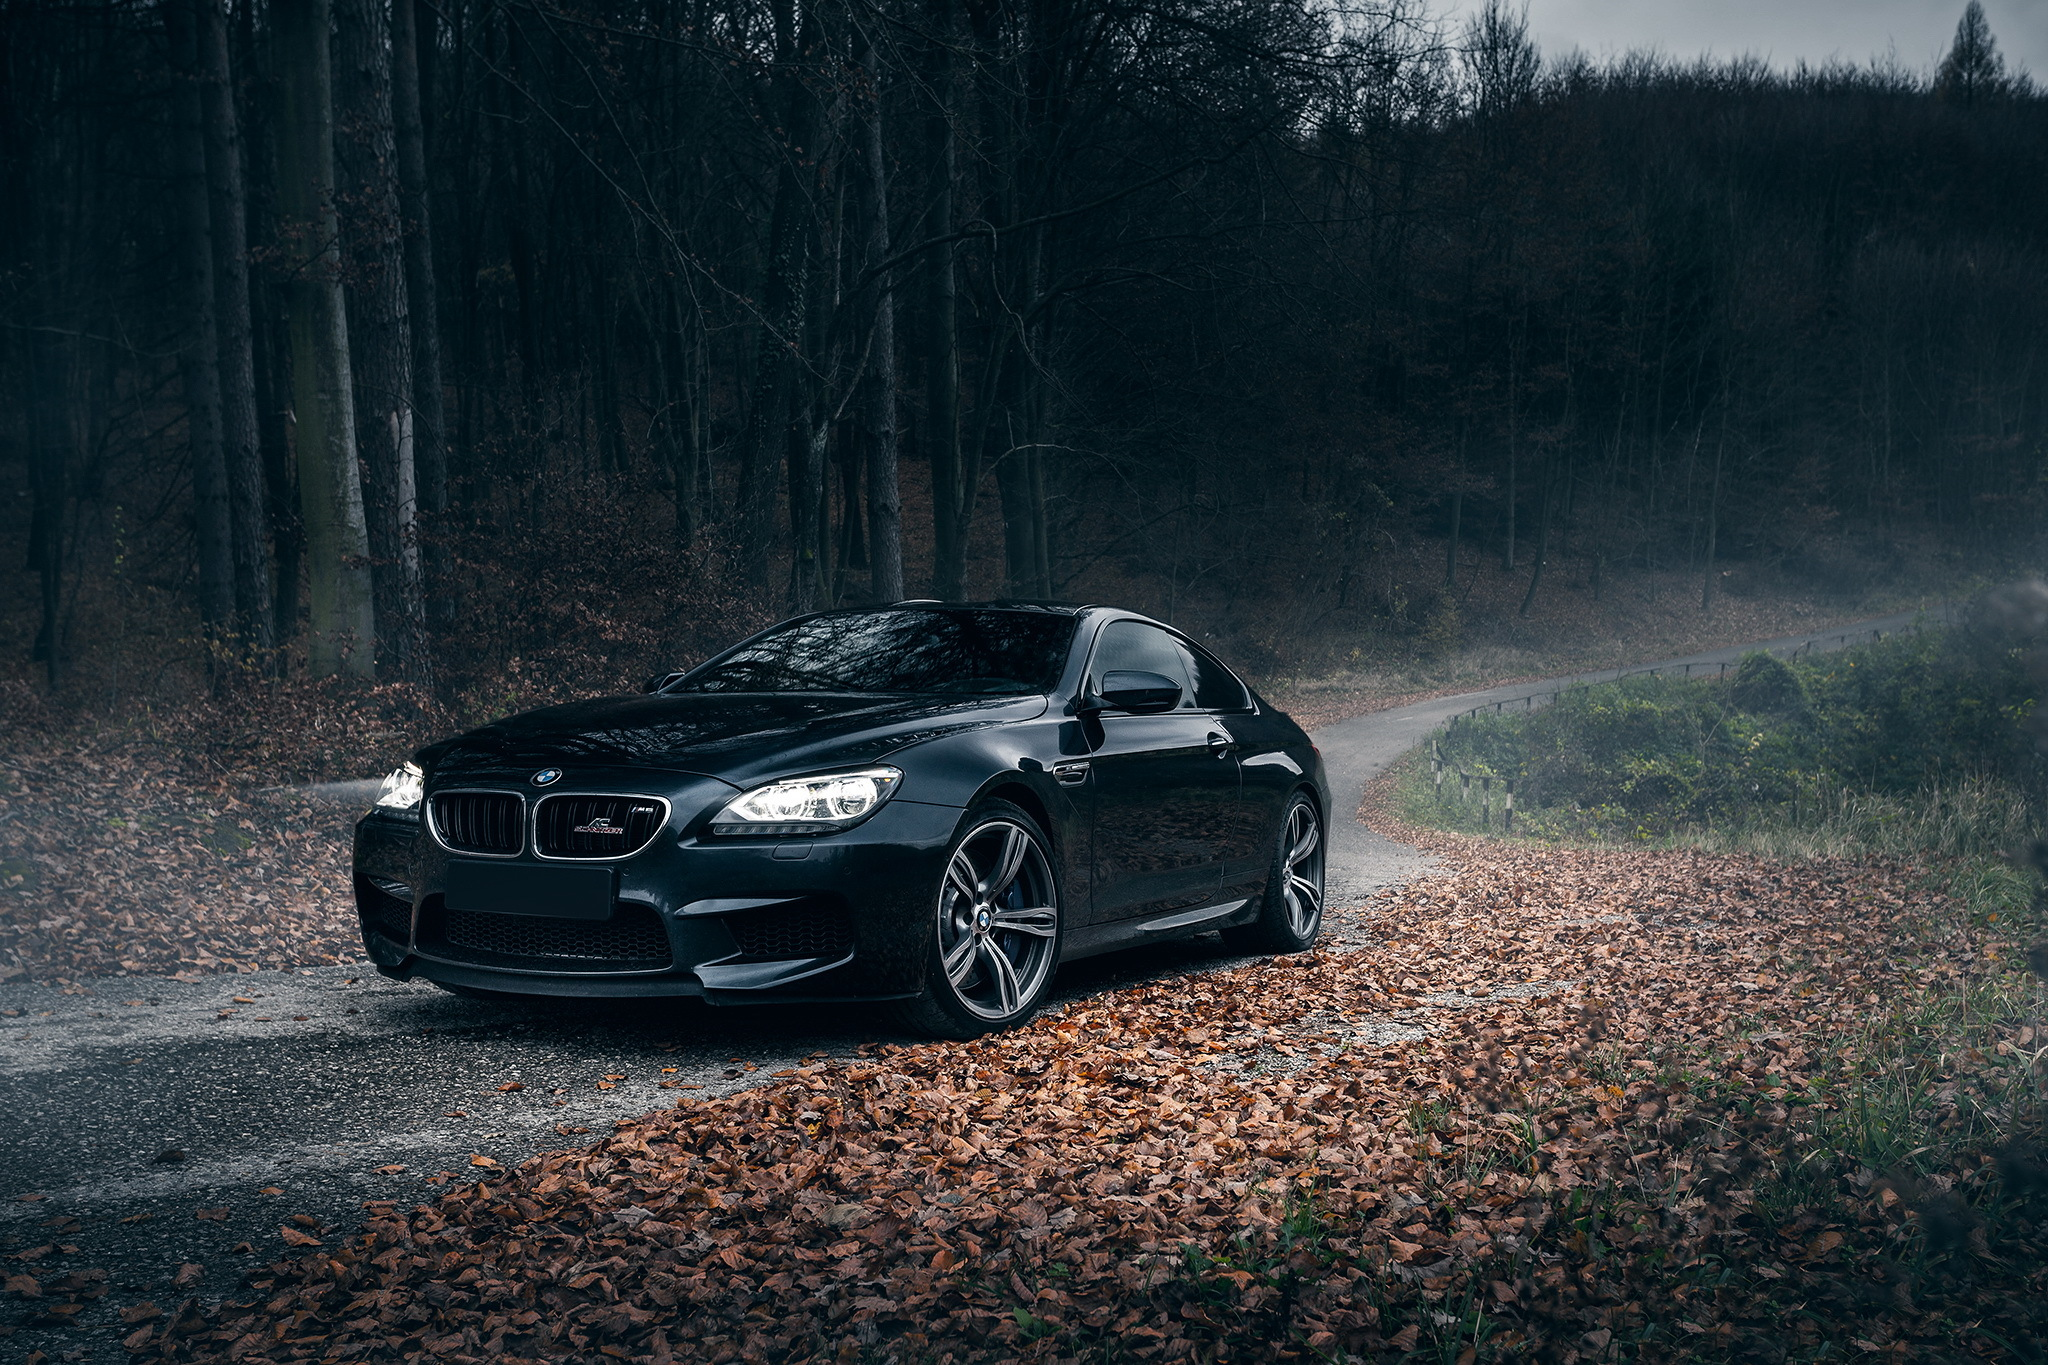 BMW M6 Wallpapers, Pictures, Images